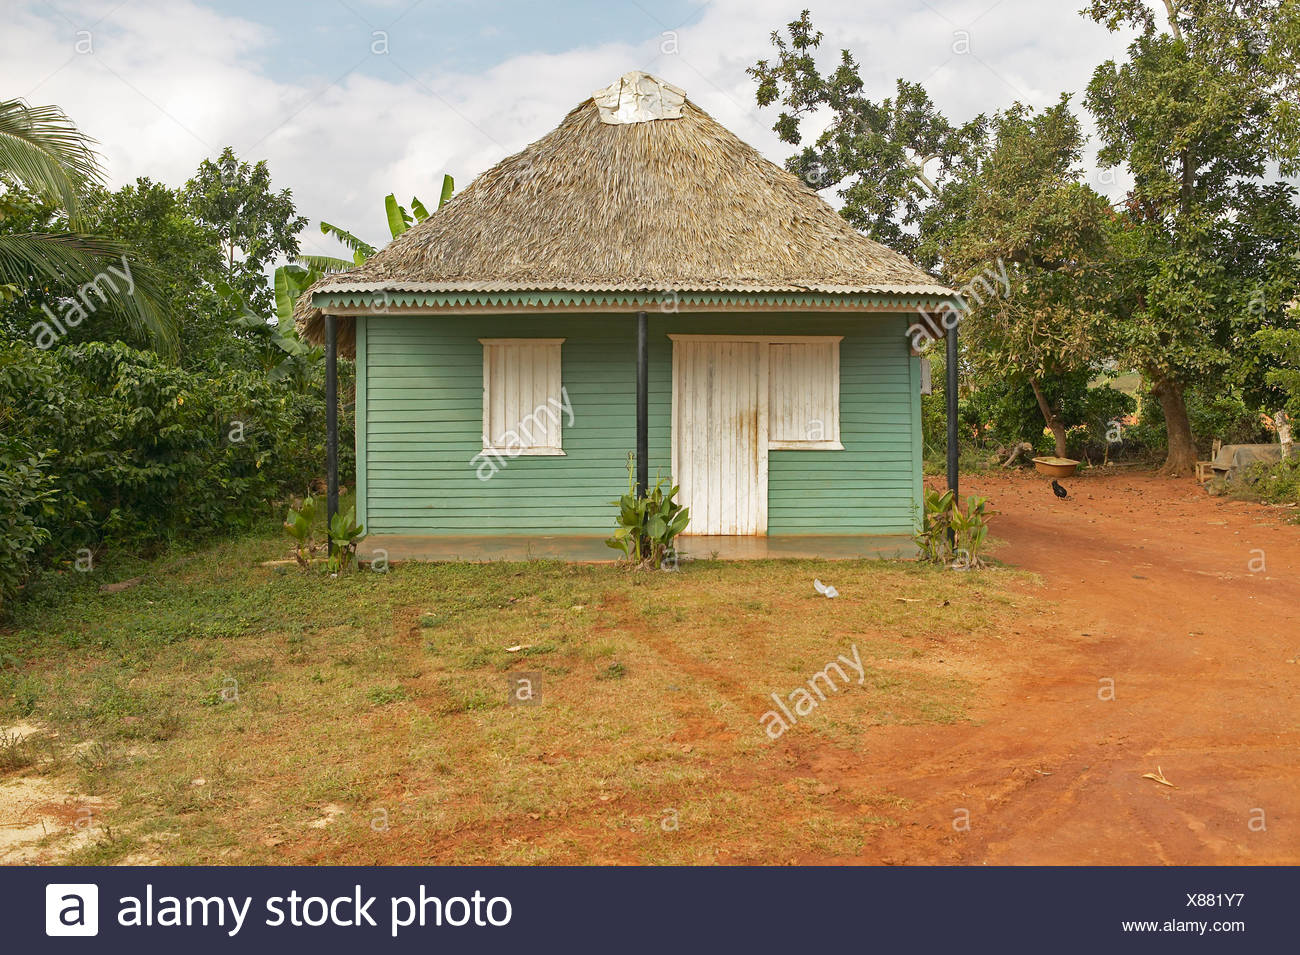 Small green house with thatched roof in Valle de Viñales, in central Cuba - Stock Image